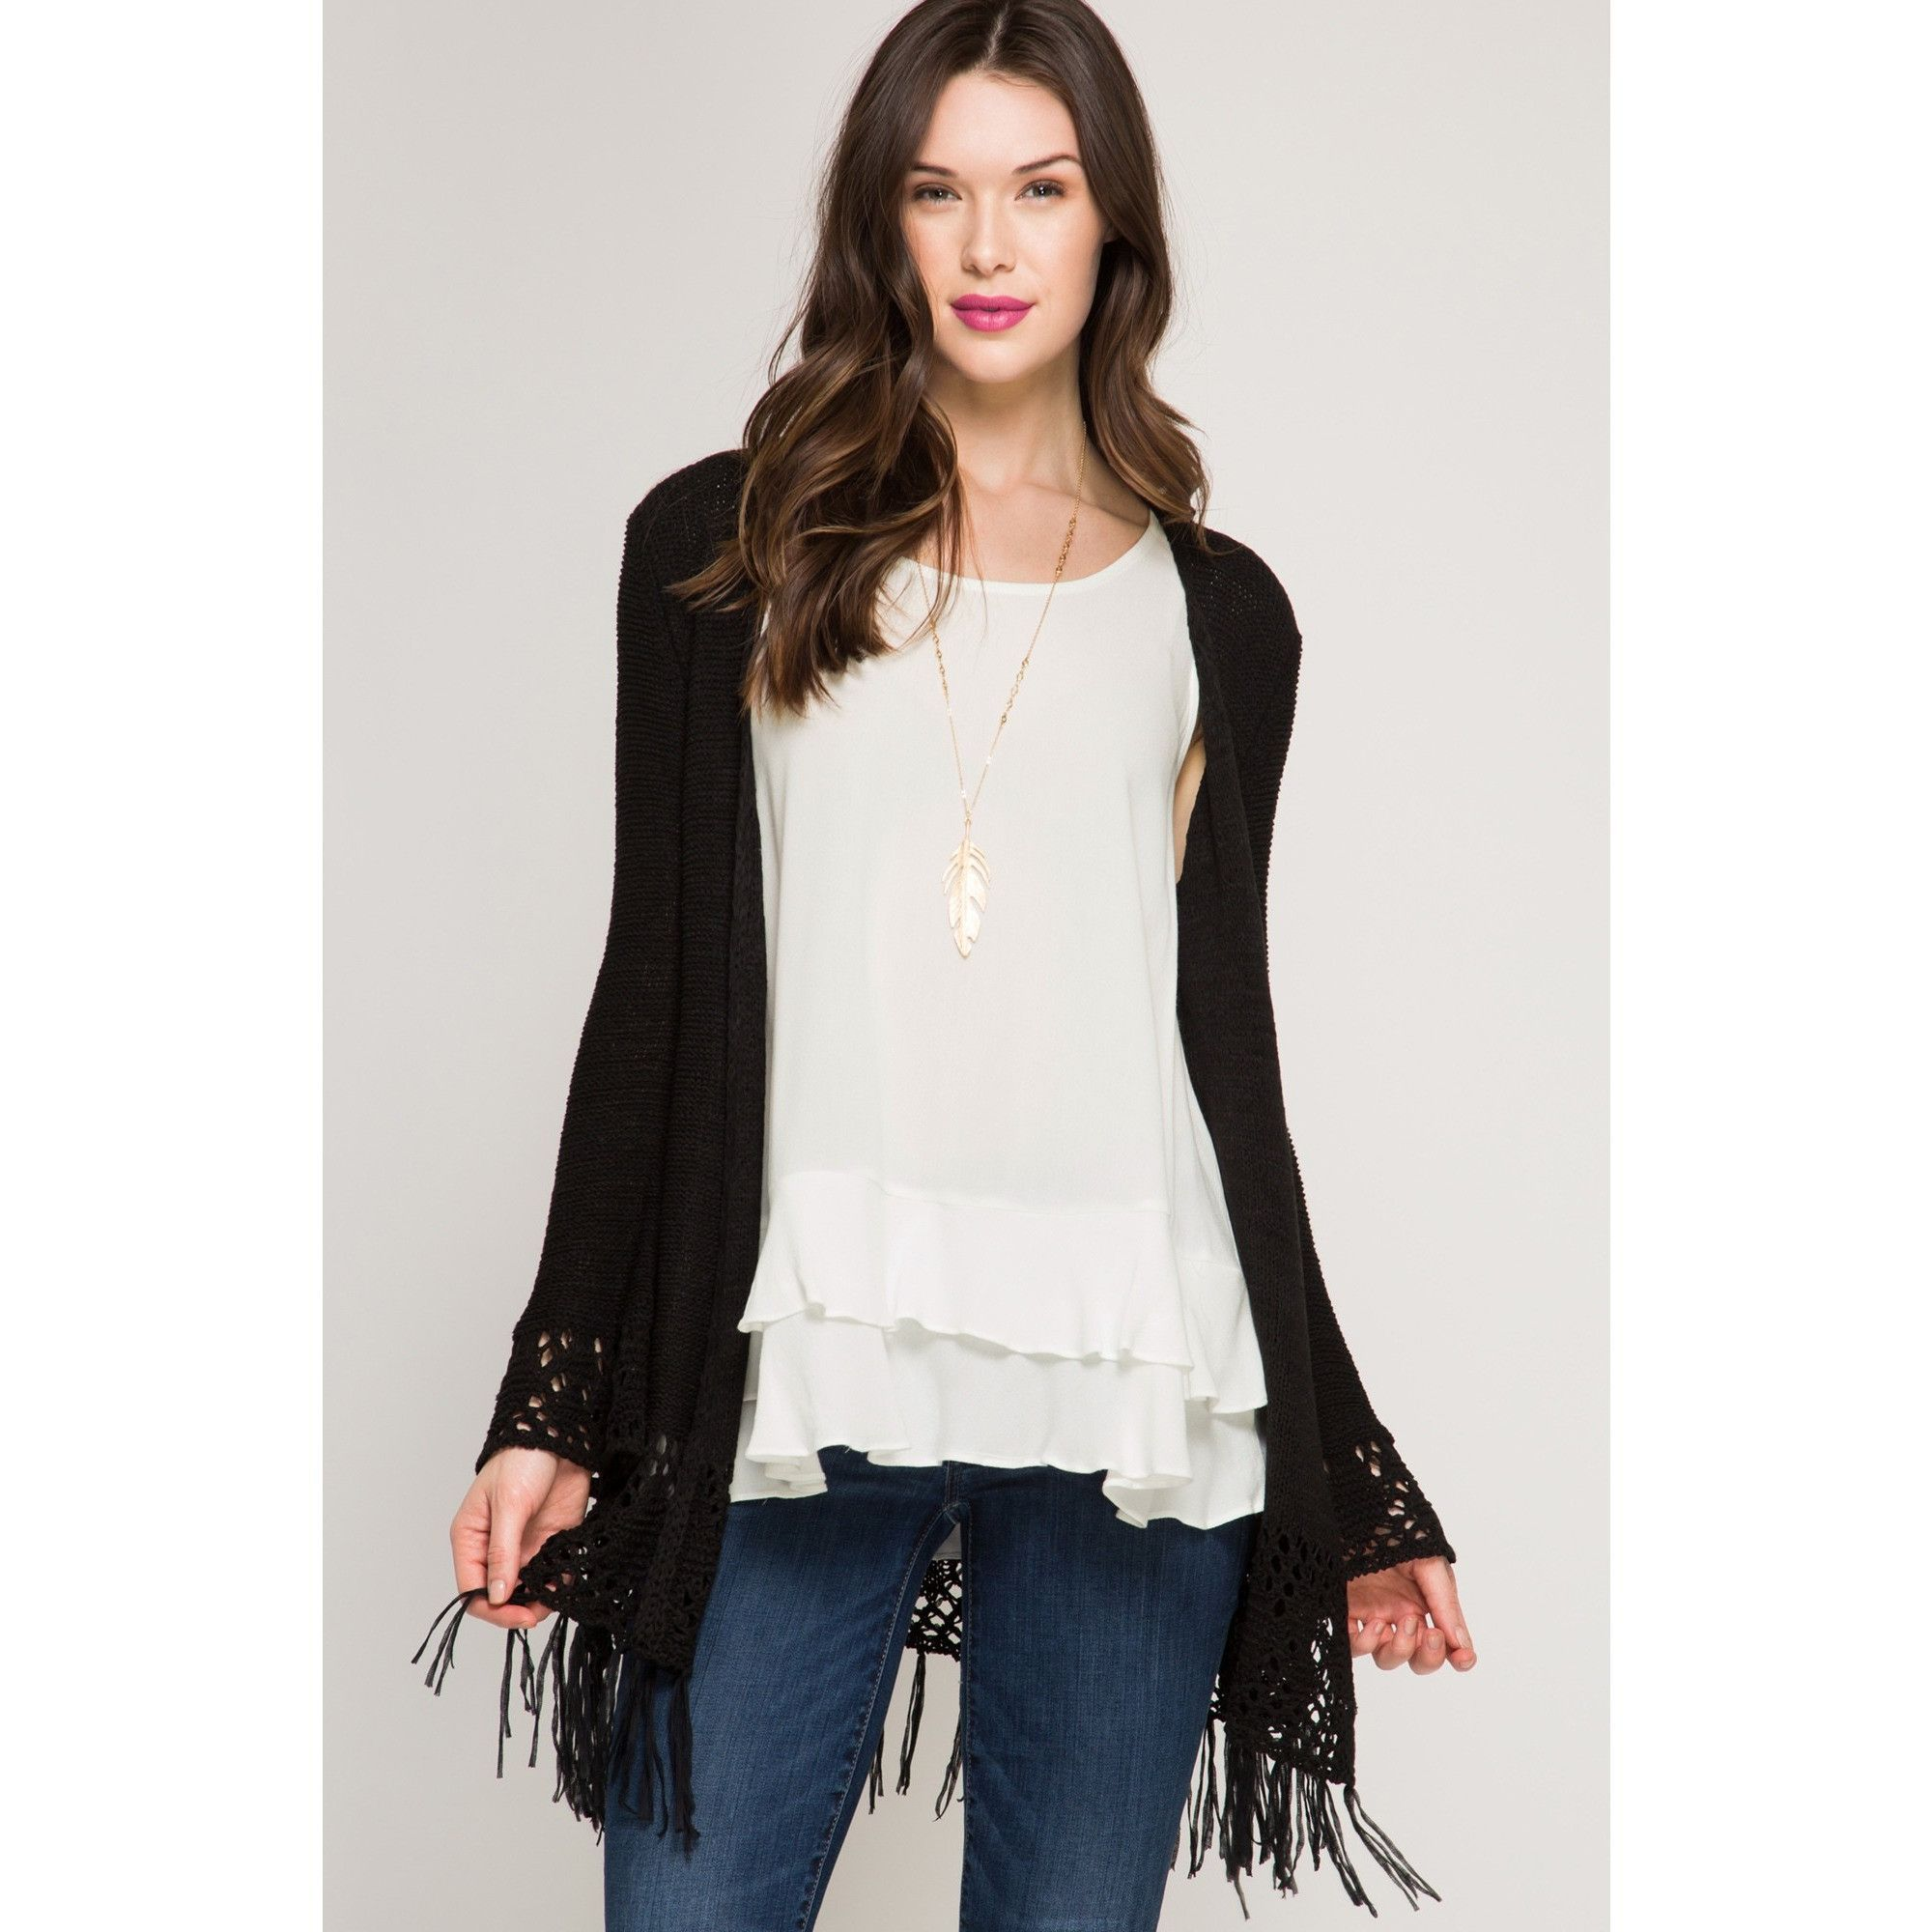 Black Crochet Cardigan with Flare Sleeves | Discover best ideas ...